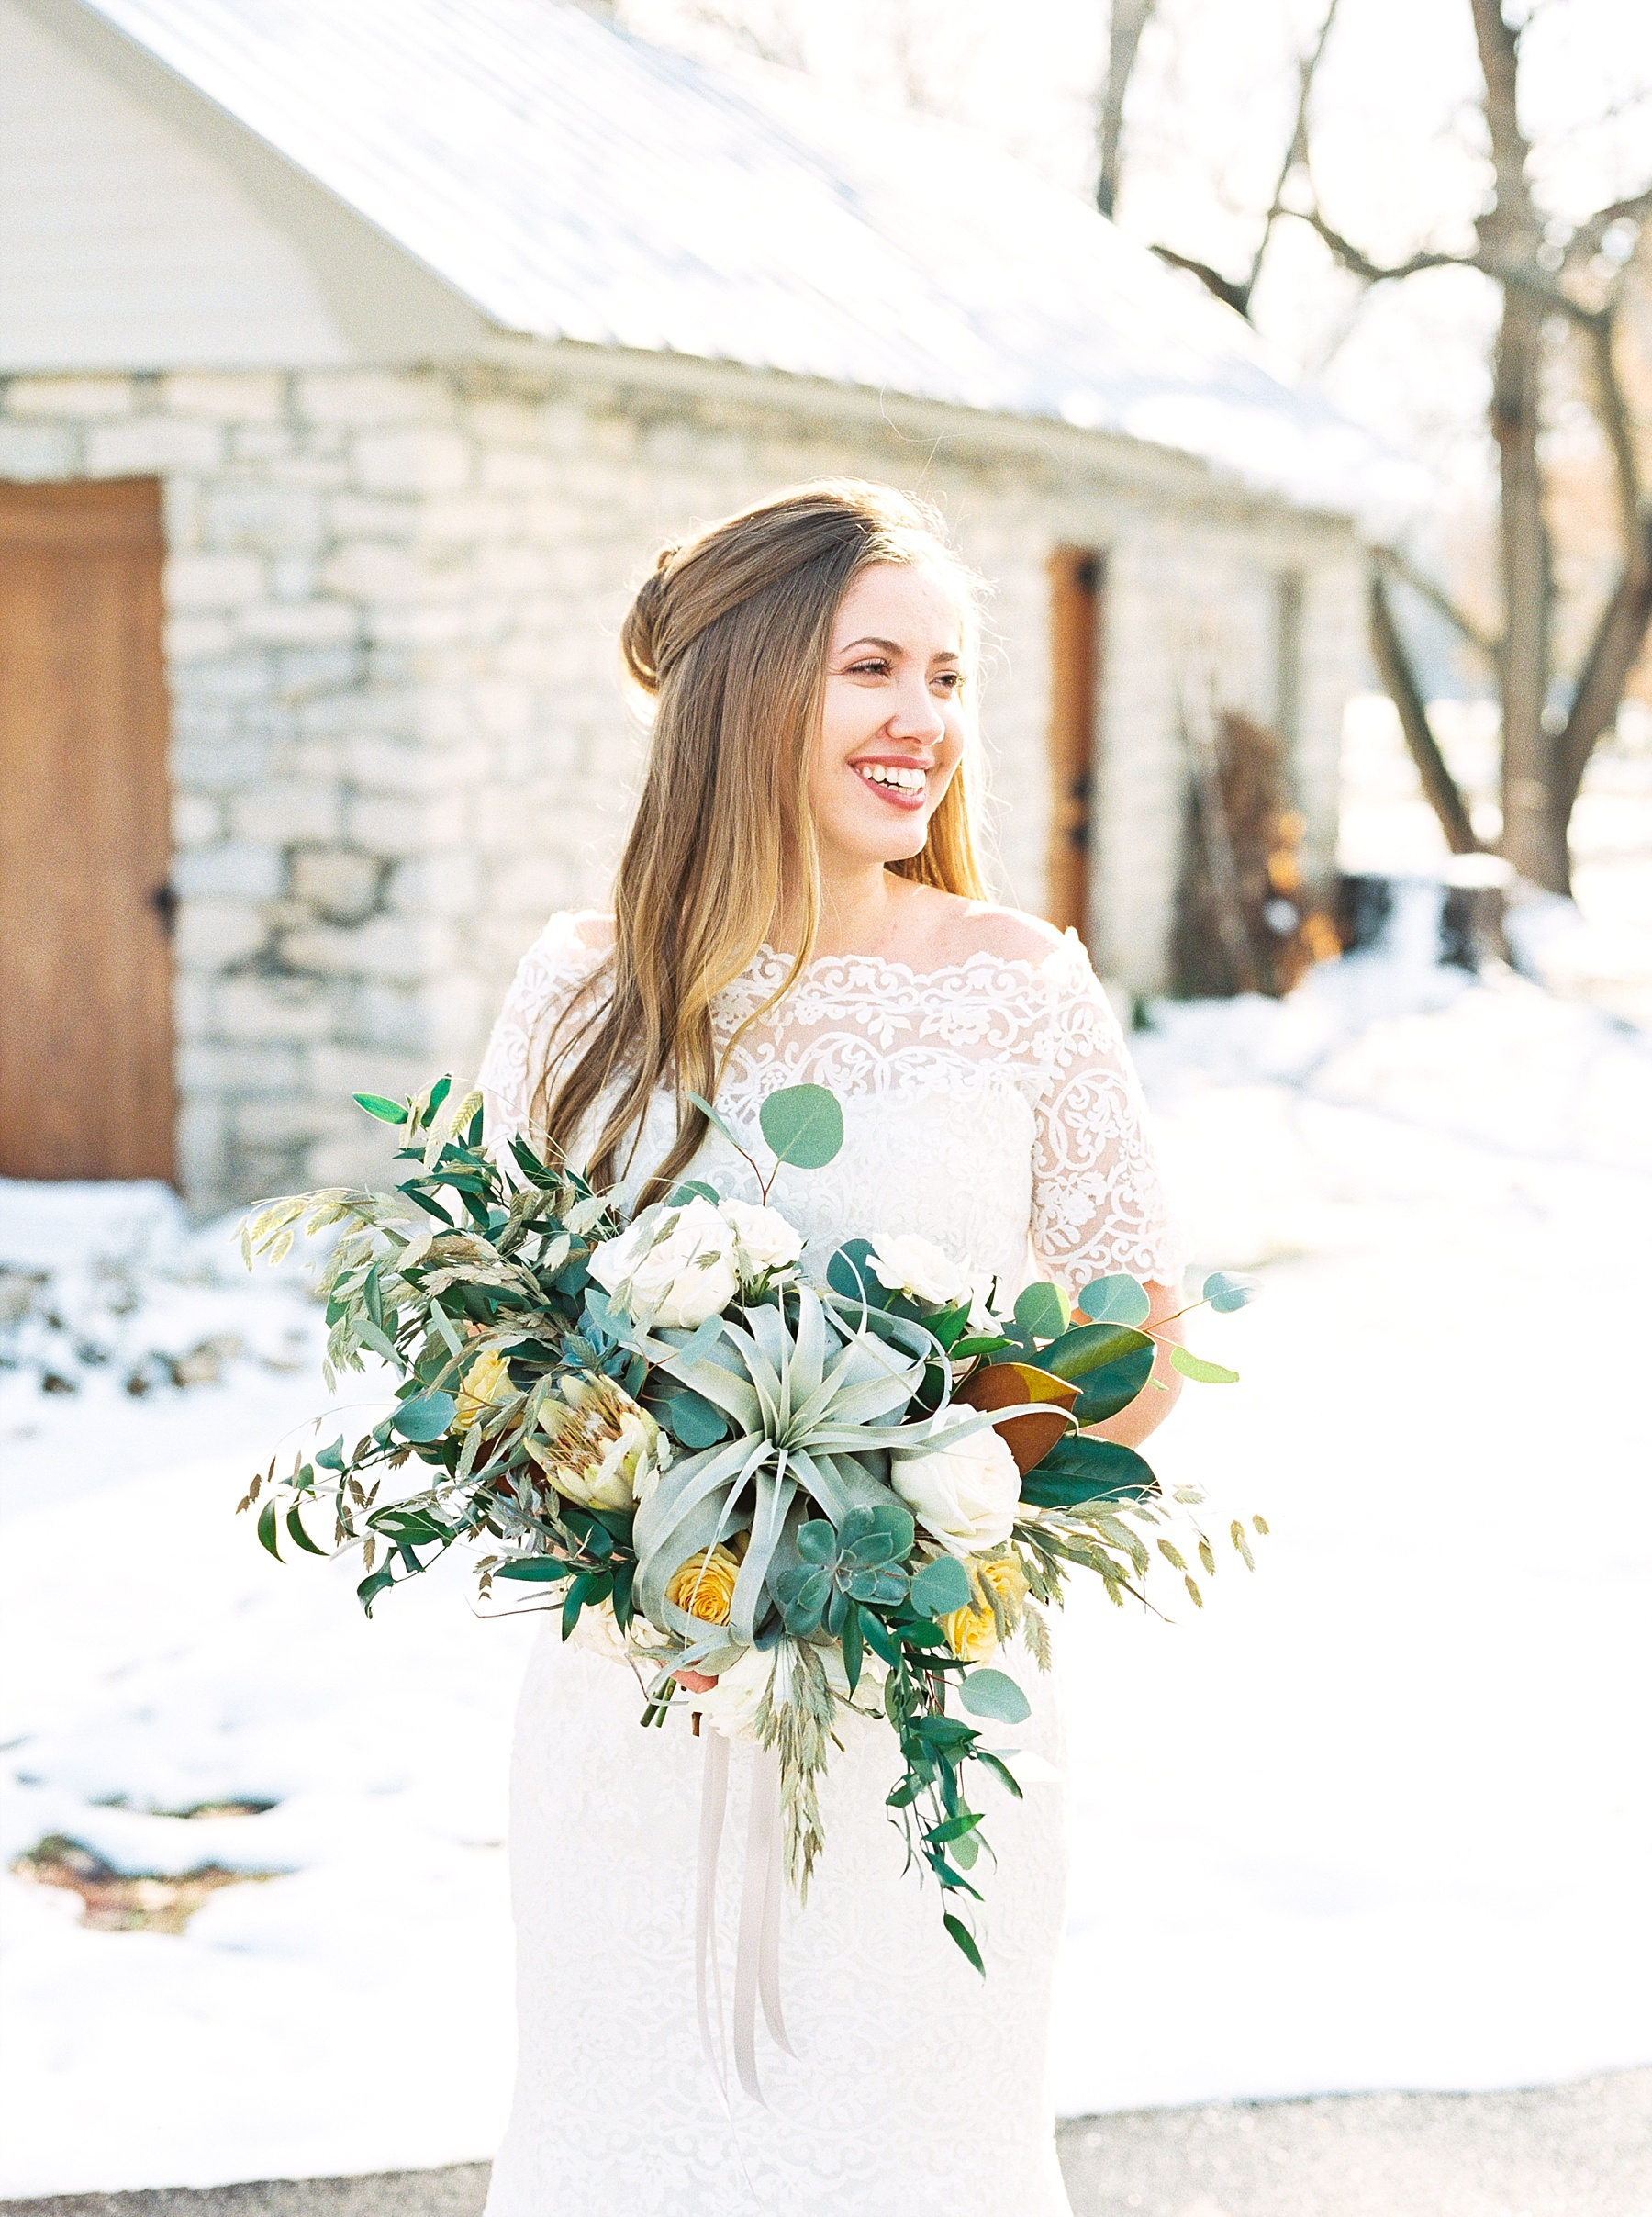 Snowy Winter Wedding at Wildcliff Events Lake With Earthy Jewel Tones and Organic Refined Style by Kelsi Kliethermes Photography Kansas City Missouri Wedding Photographer_0141.jpg